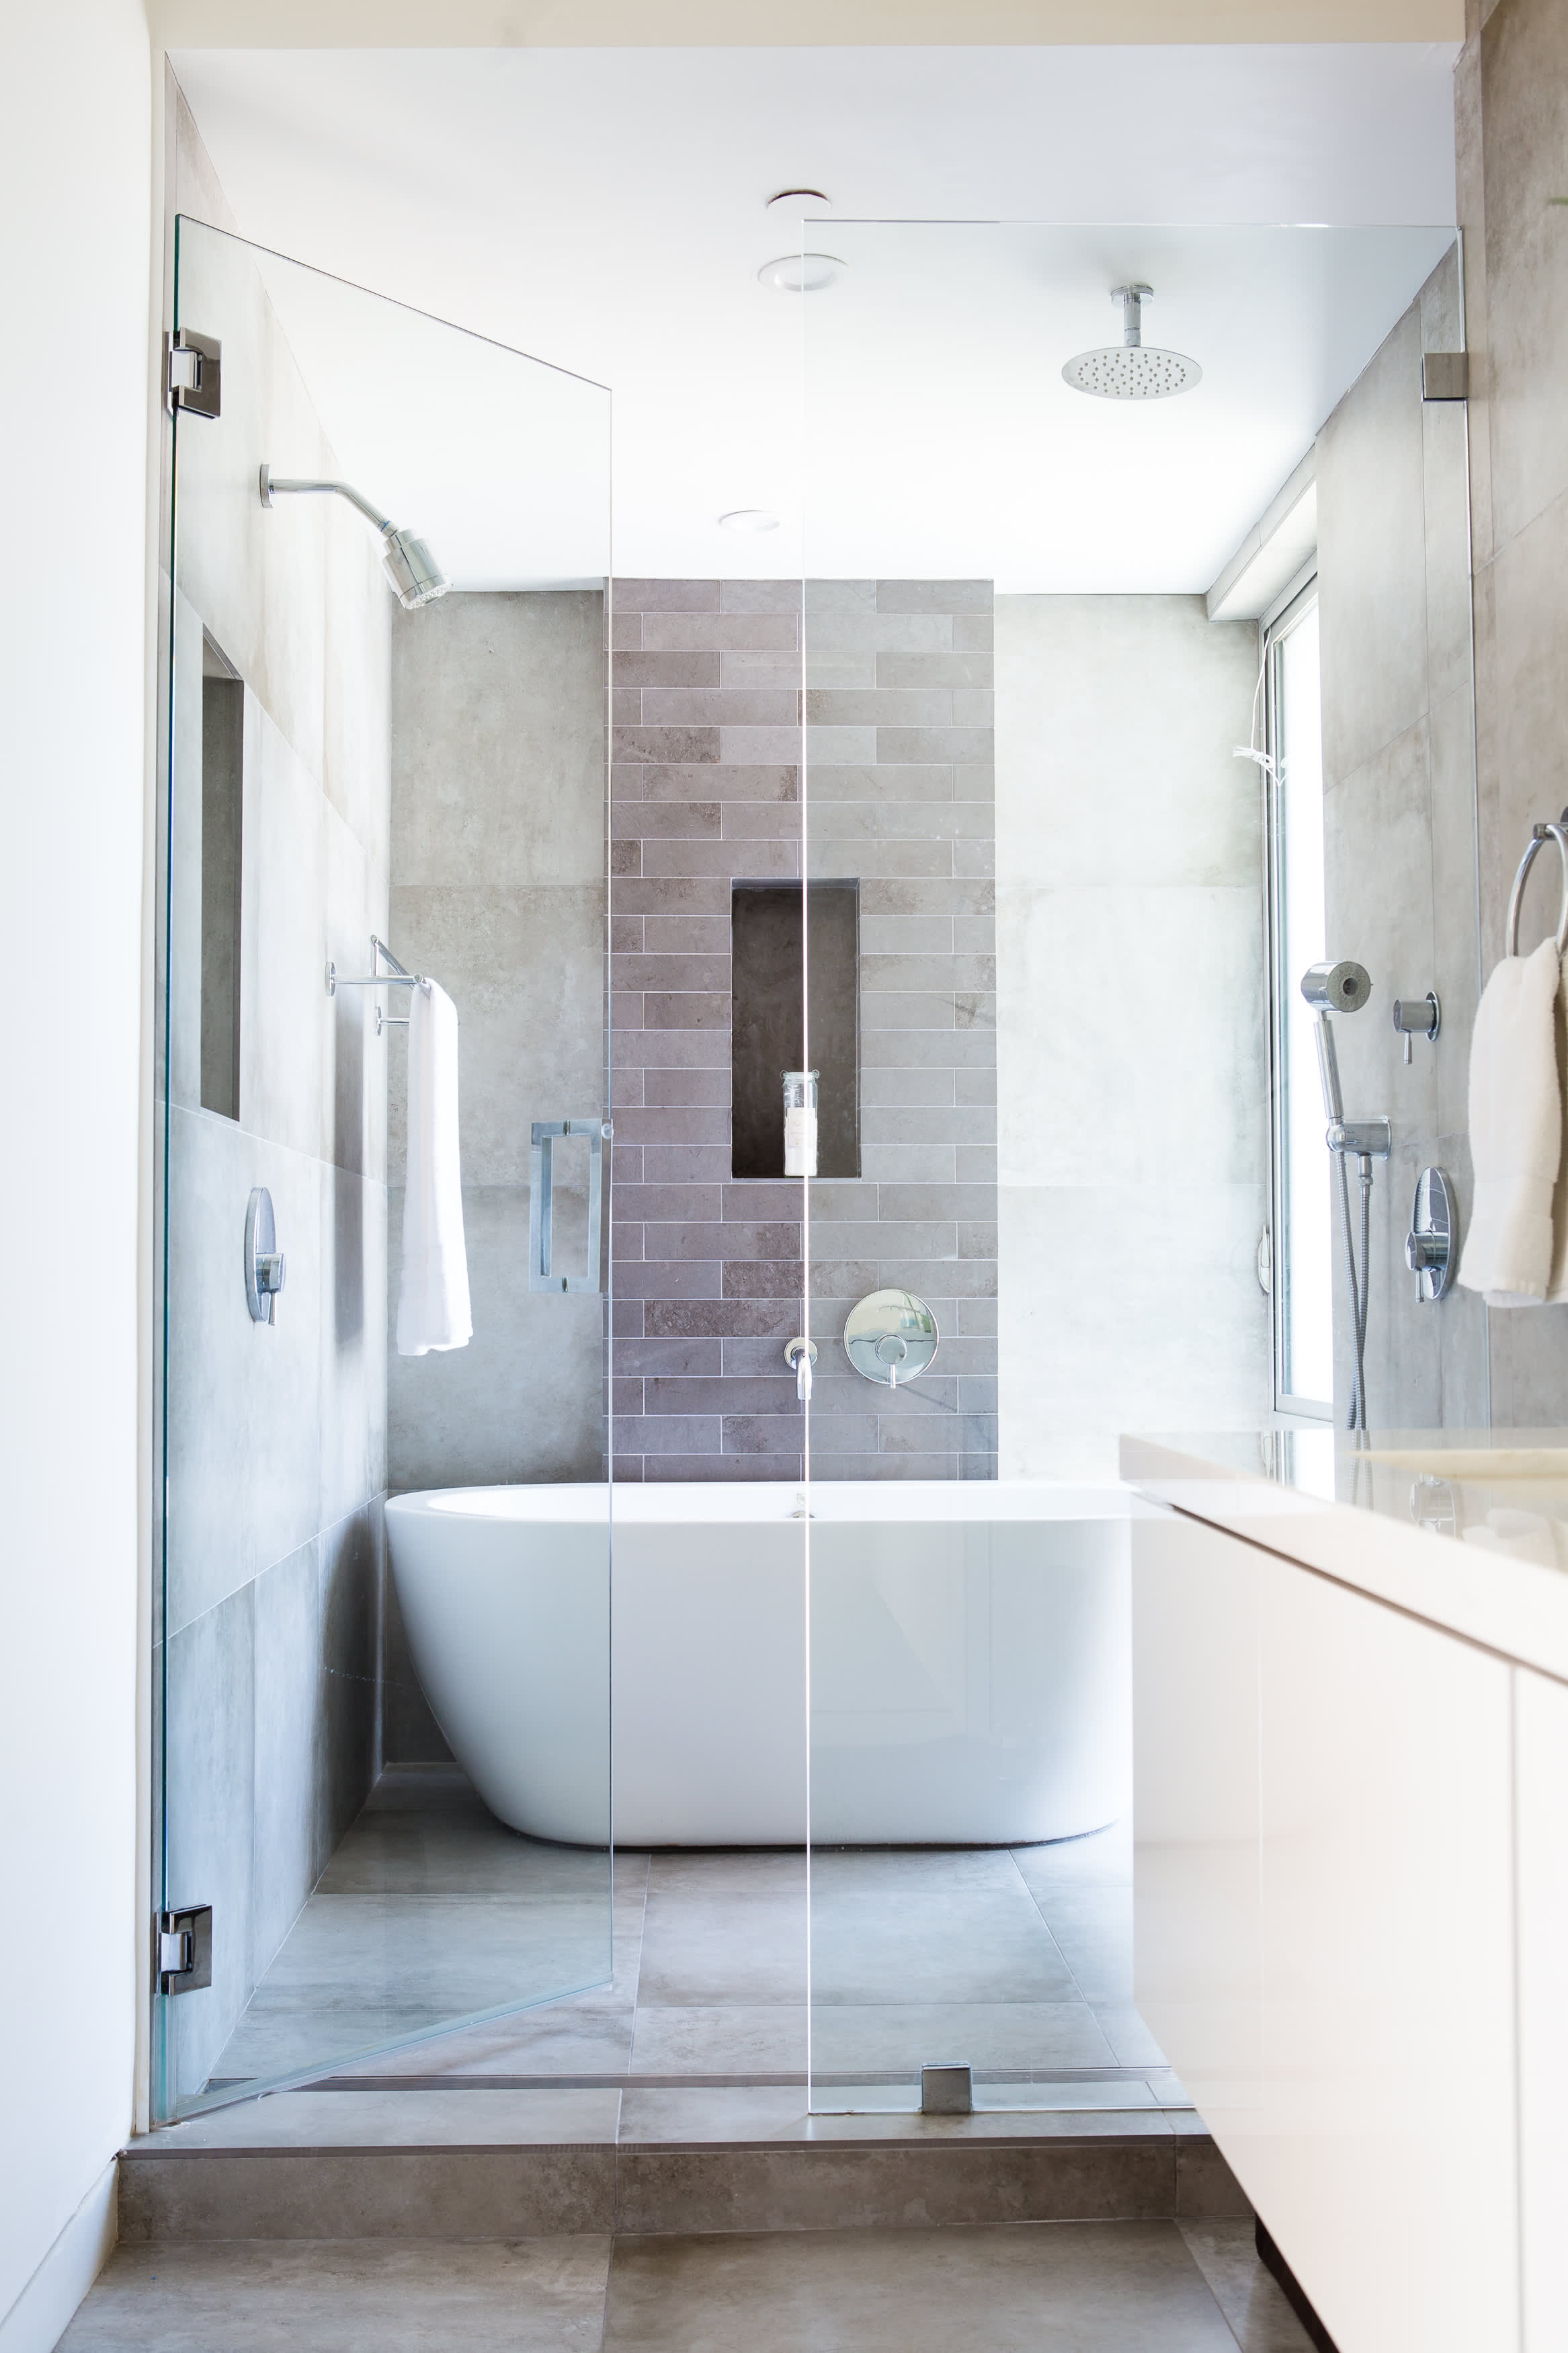 50 Gorgeous Bathroom Tile Ideas To Get Your Design Juices Flowing: Gallery  Image 3